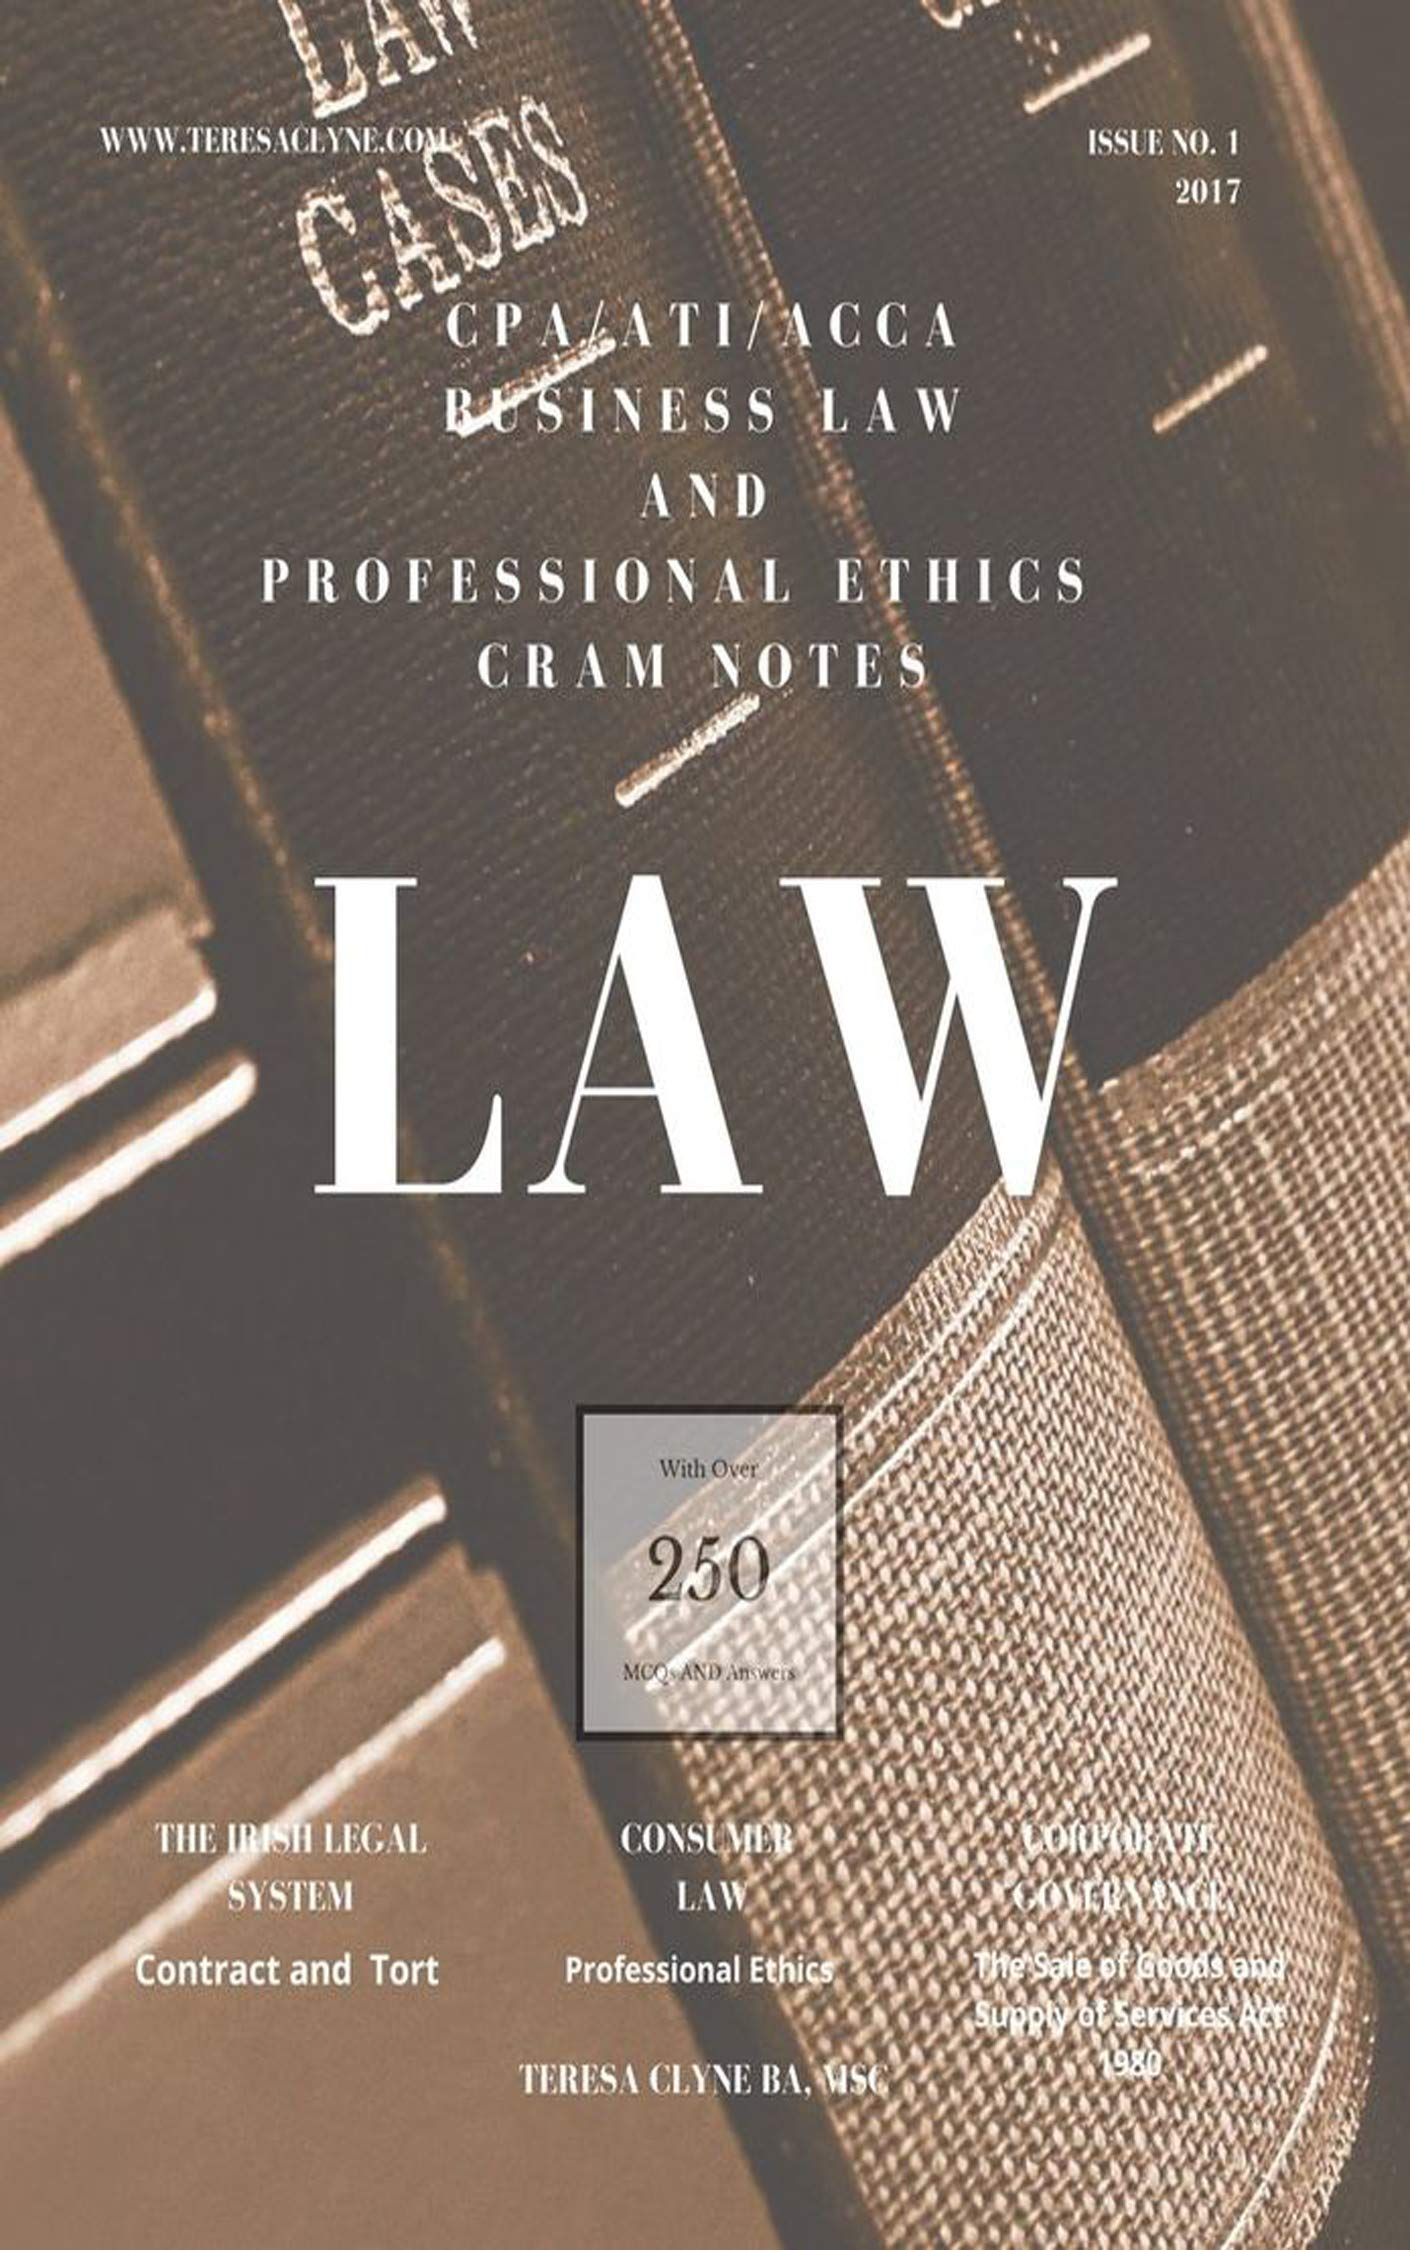 CPA / ACCA / ATI Business law in Ireland: Cram Notes - Revision Notes with MCQ's